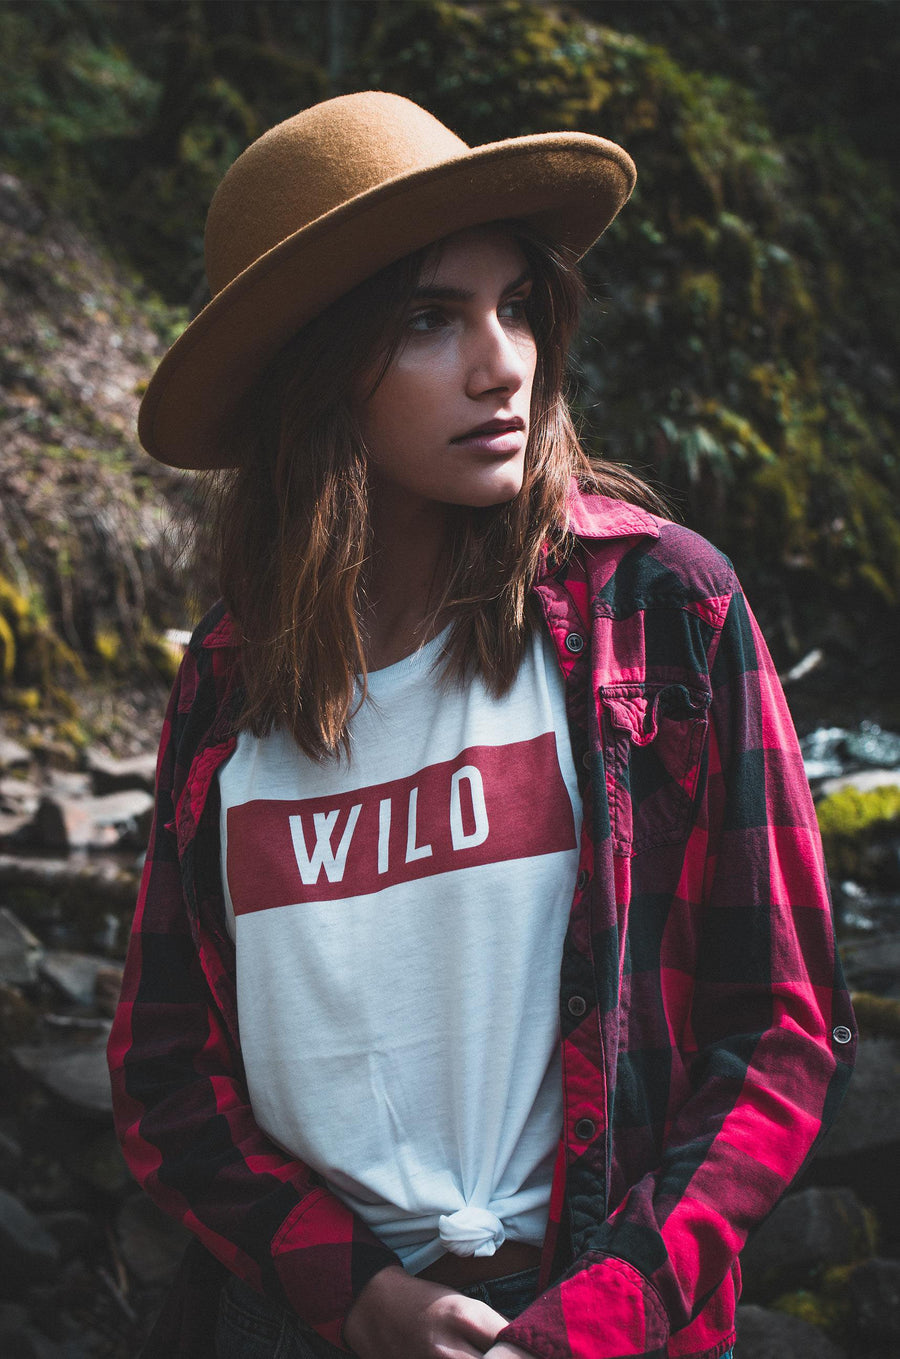 WILD Women's Muscle Tank - Wondery, A Parks Apparel Brand